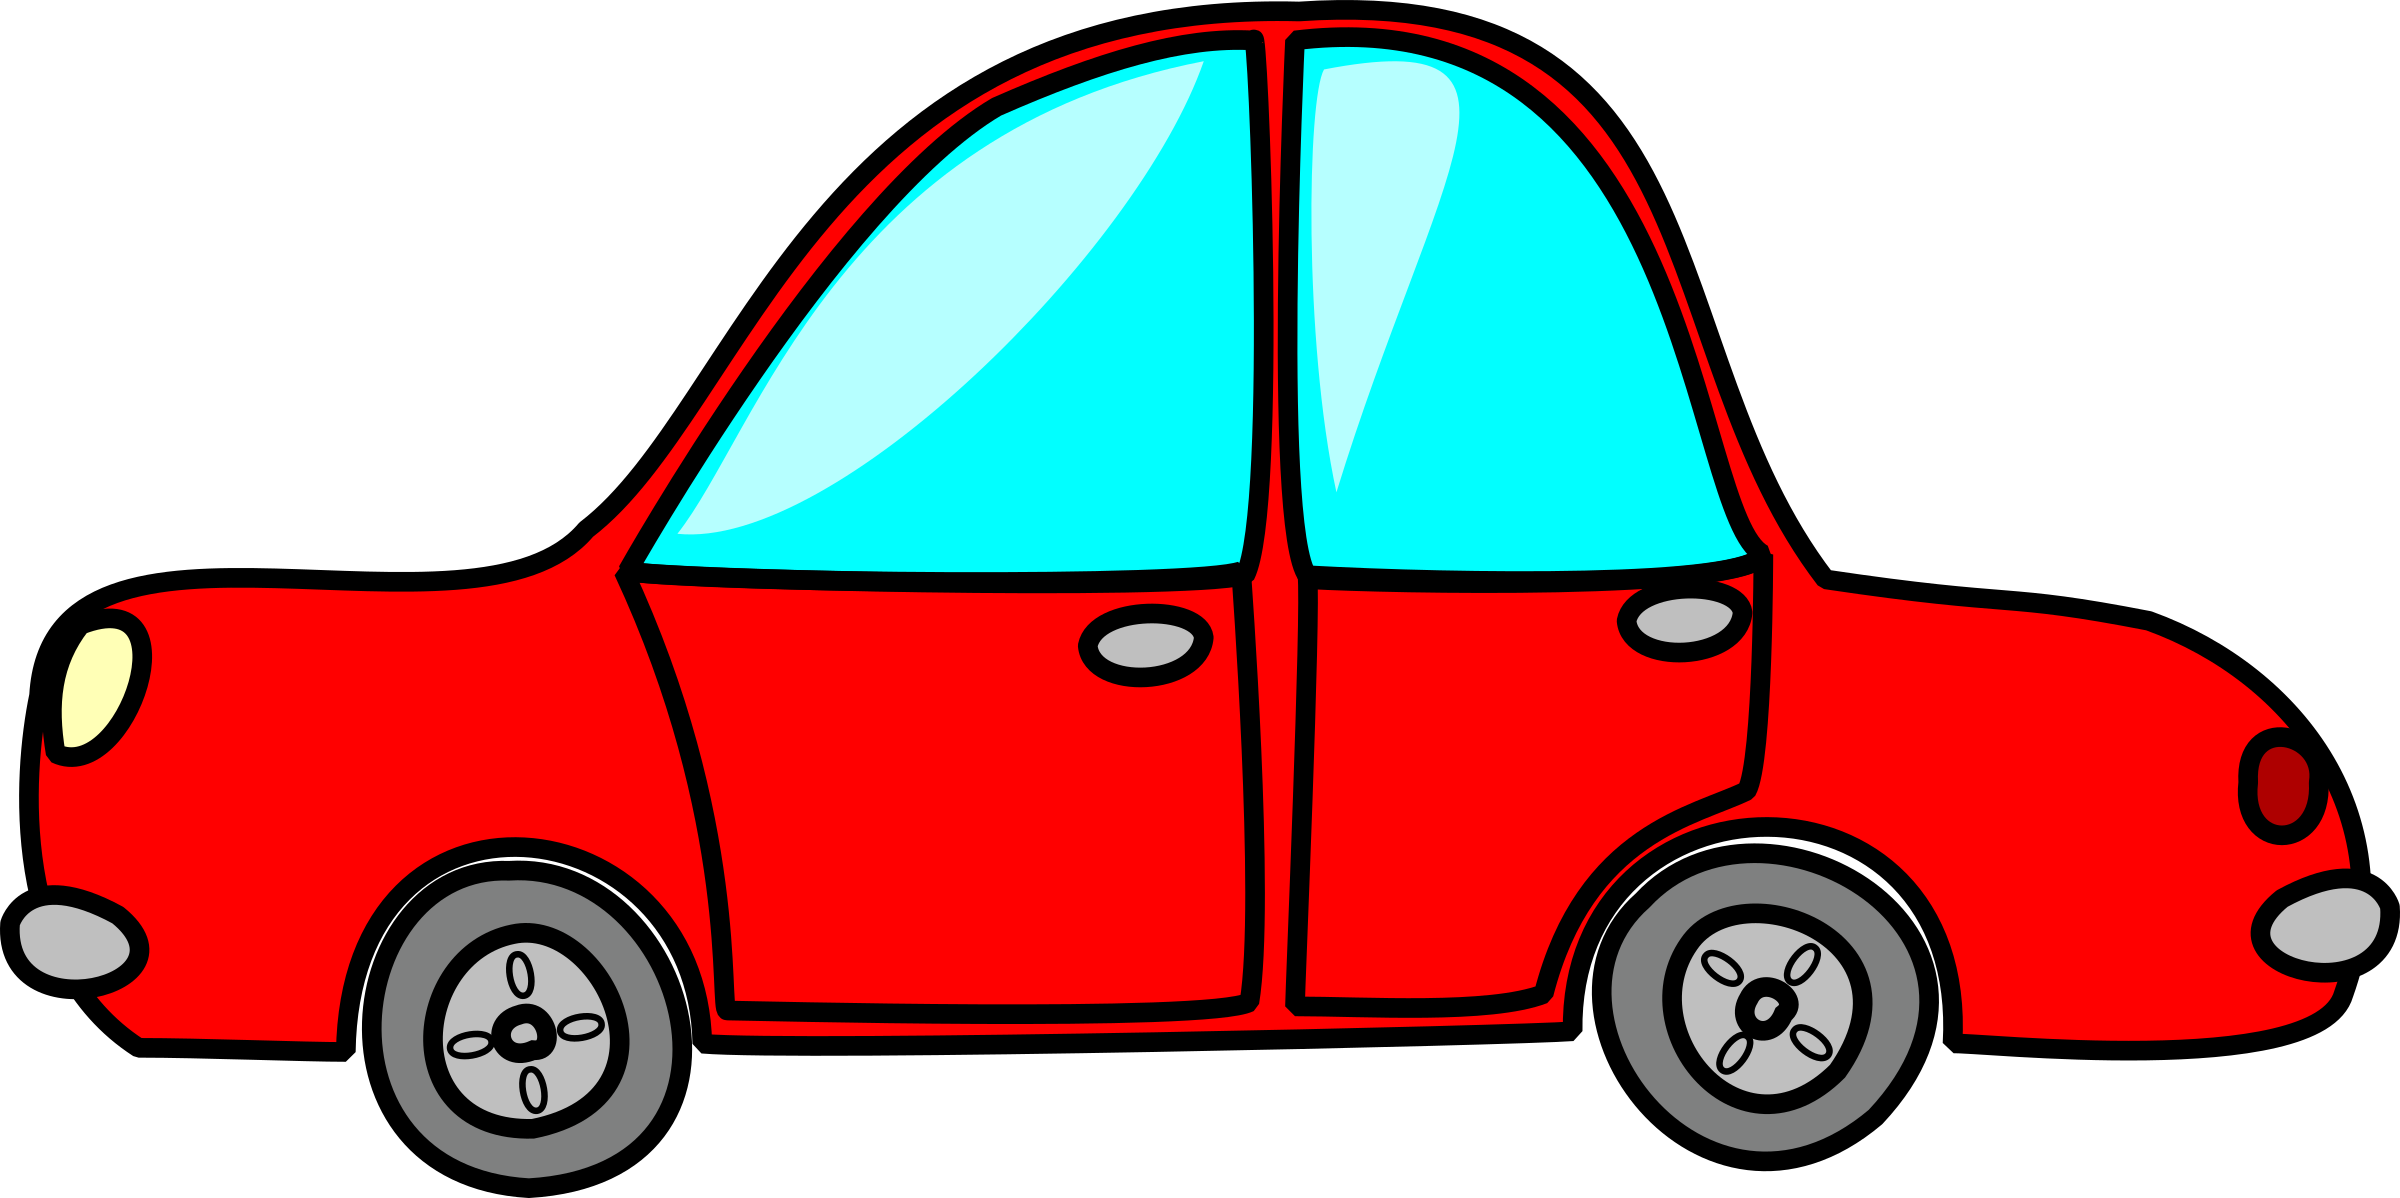 This free Icons Png design of Toy car PlusPng.com  - Toy Car PNG Free